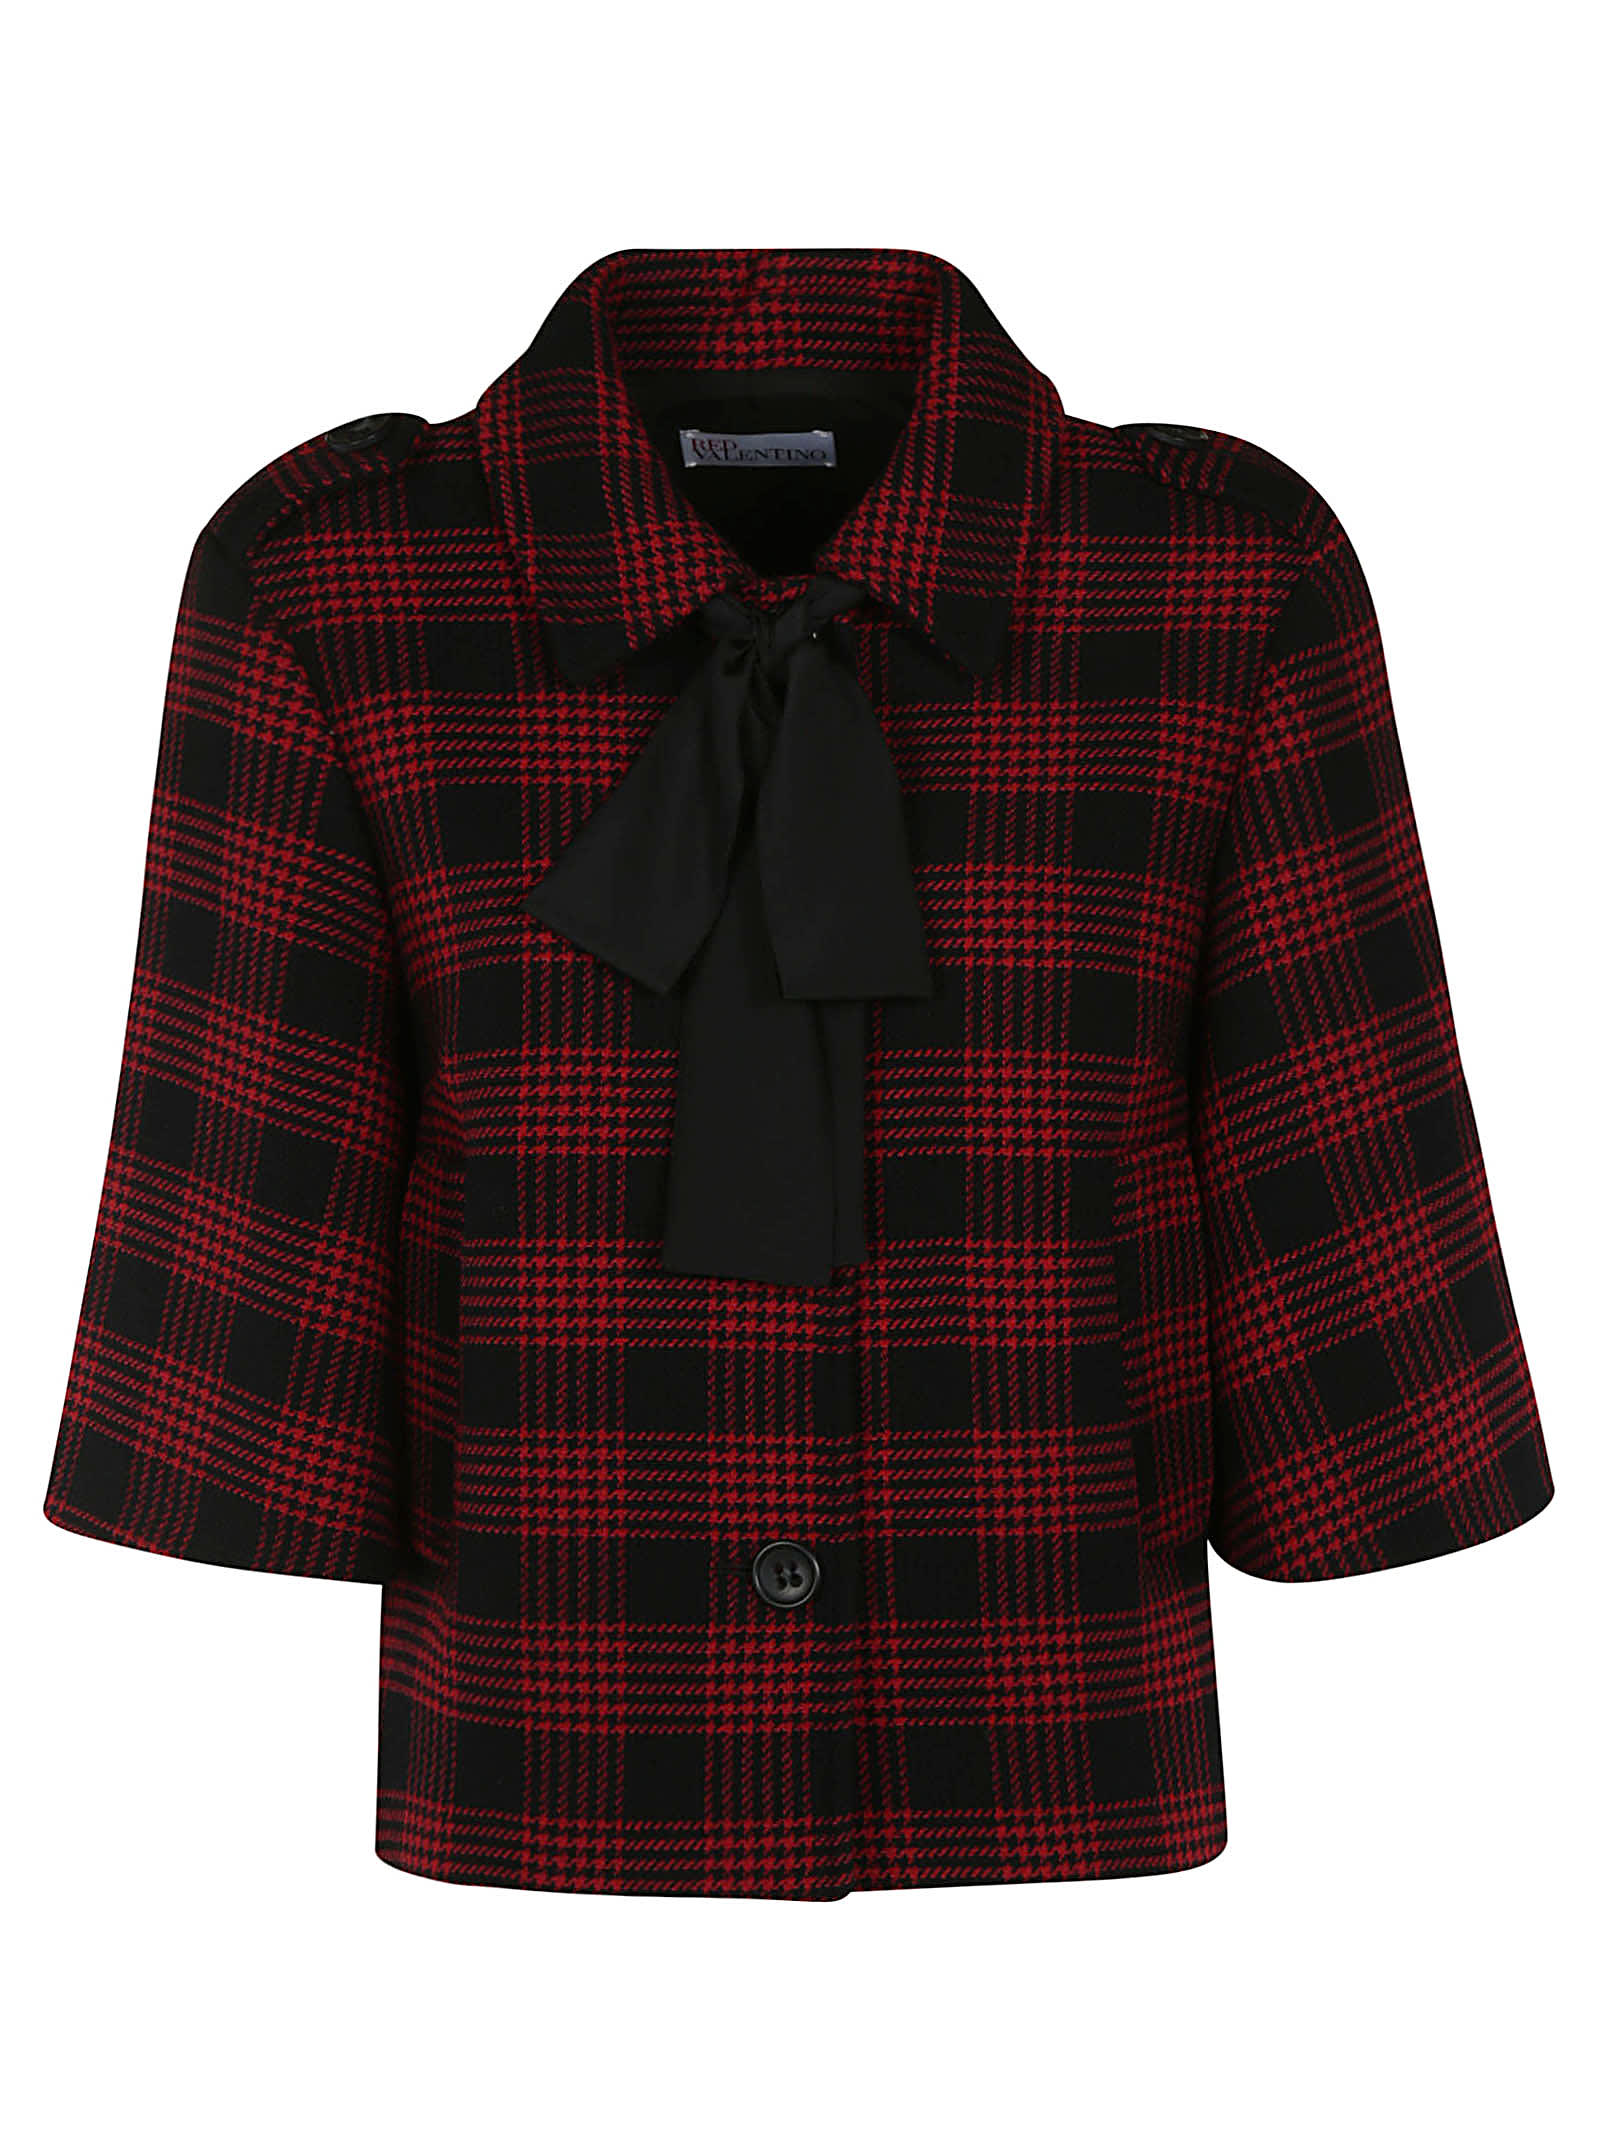 Photo of  RED Valentino Checked Jacket- shop RED Valentino jackets online sales